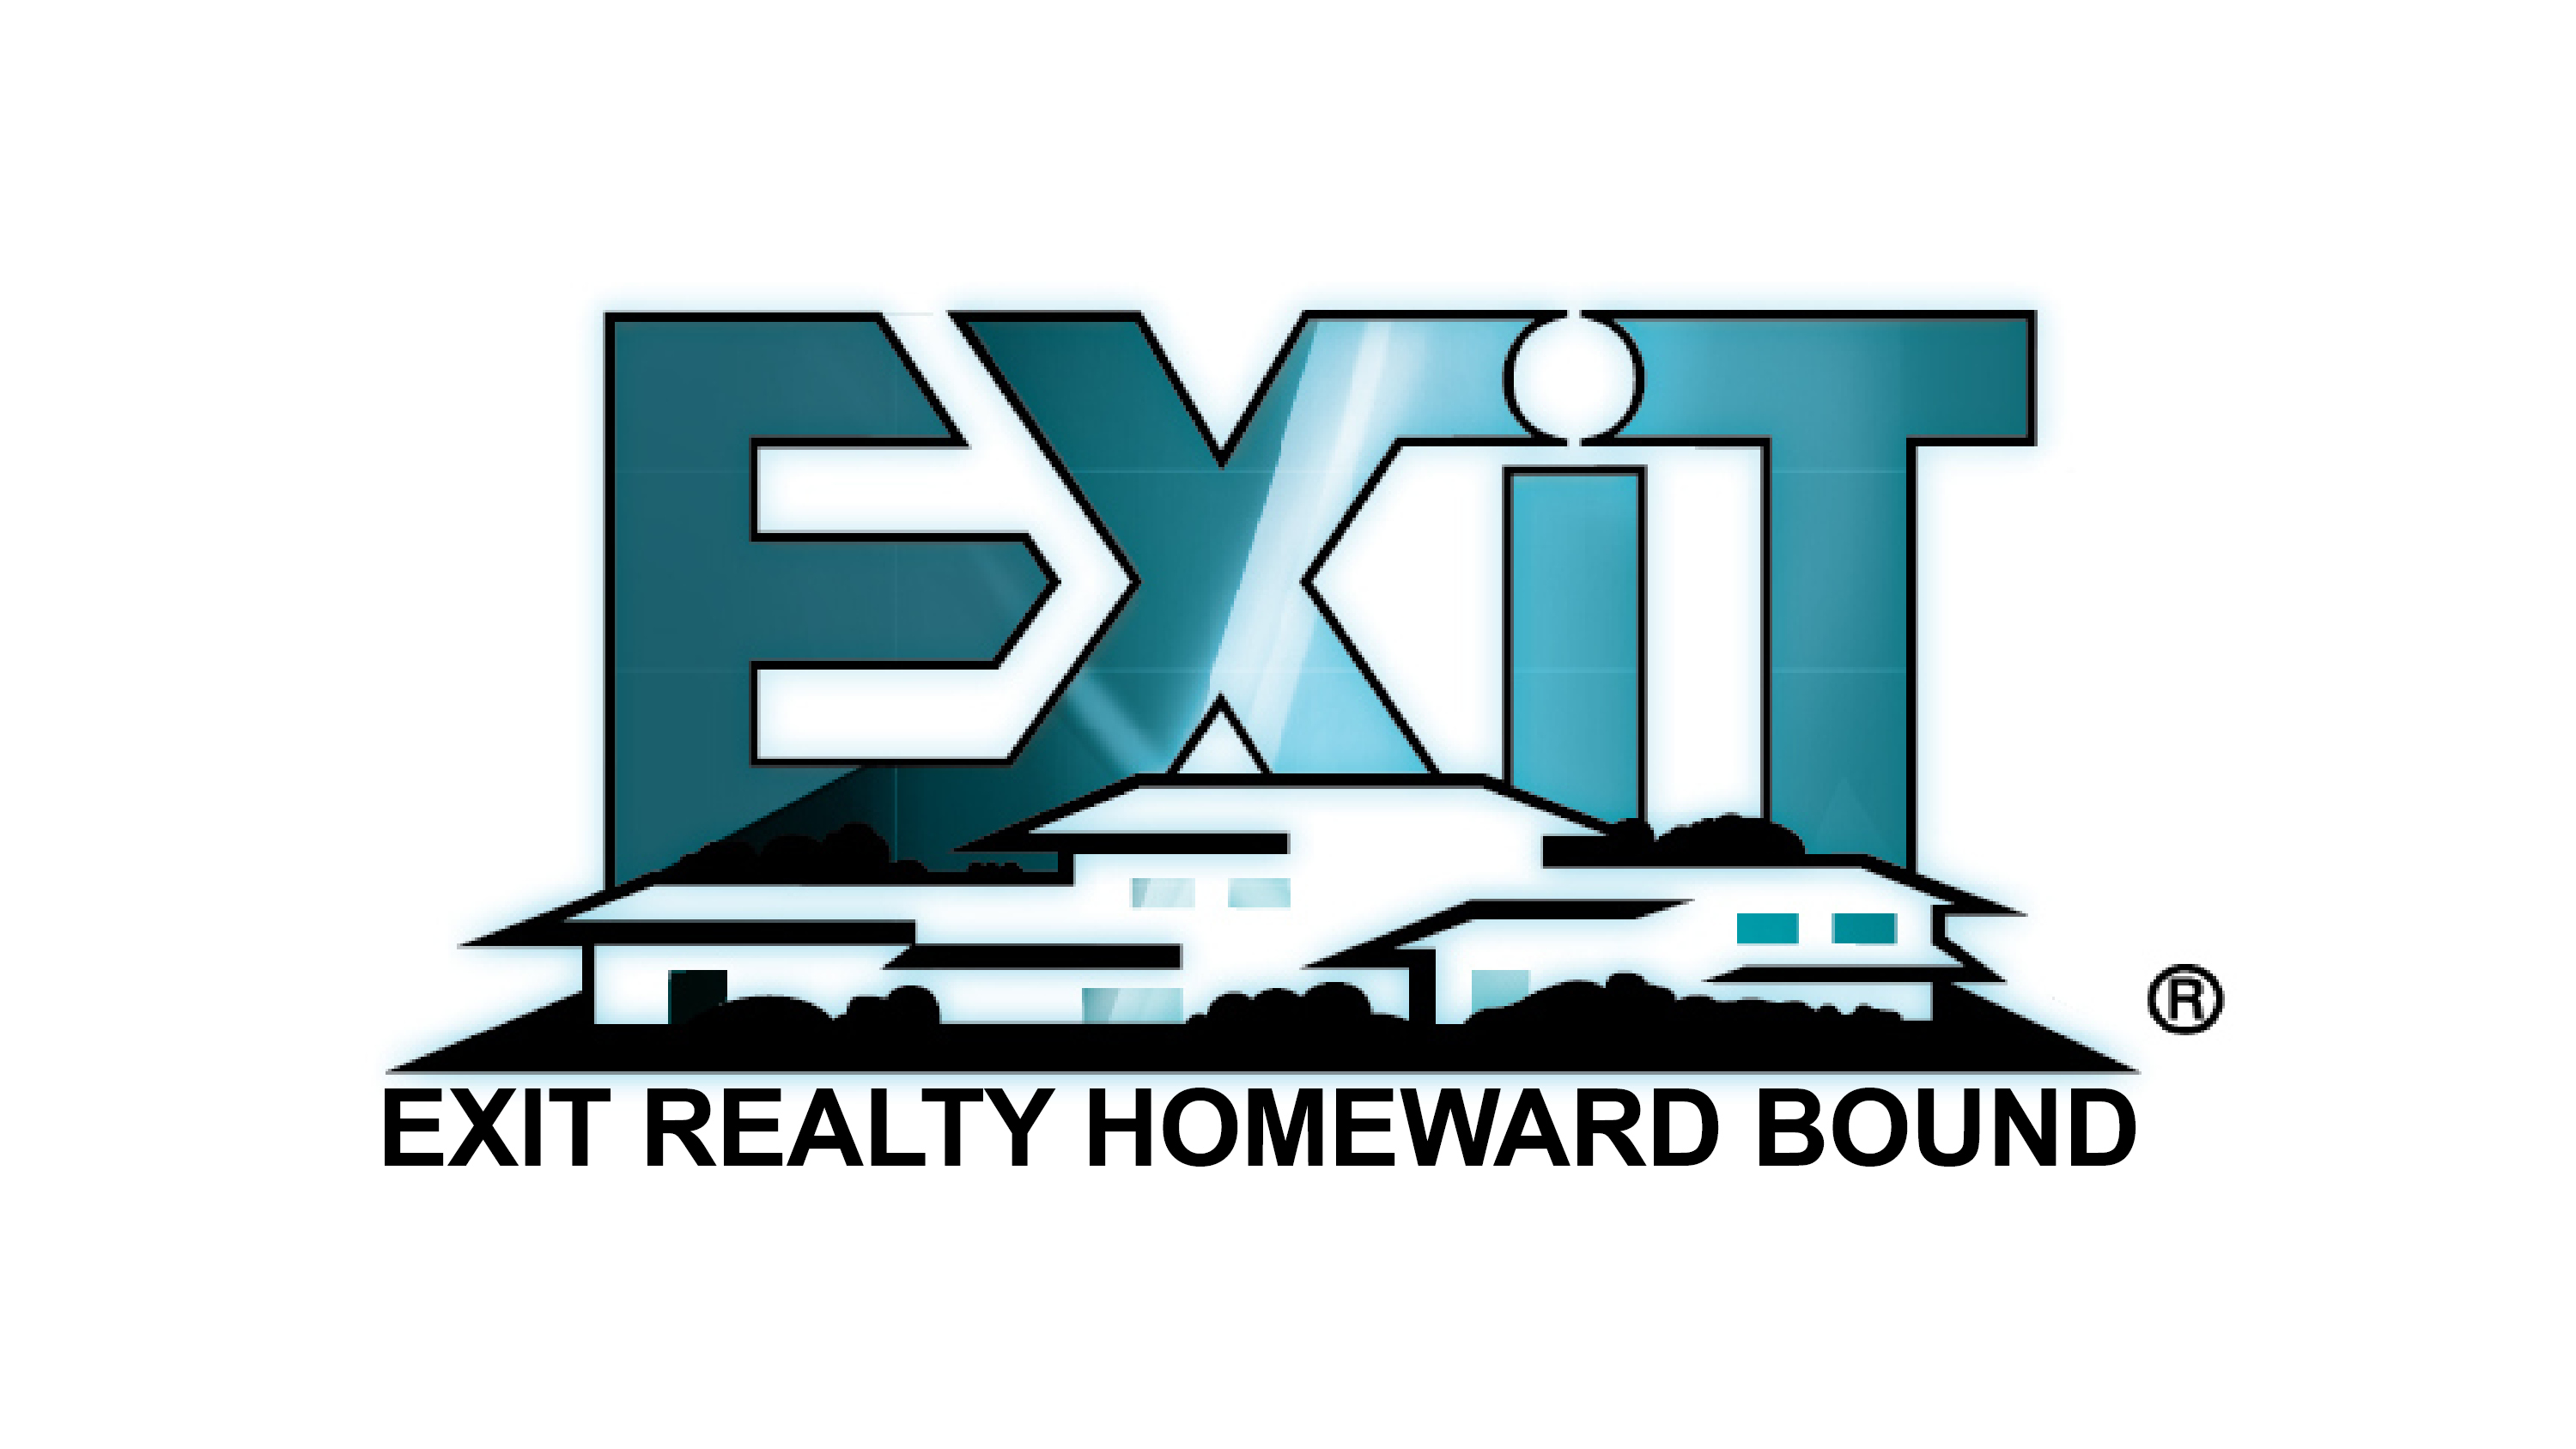 EXIT Realty Homeward Bound Expands to Oneonta, NY.